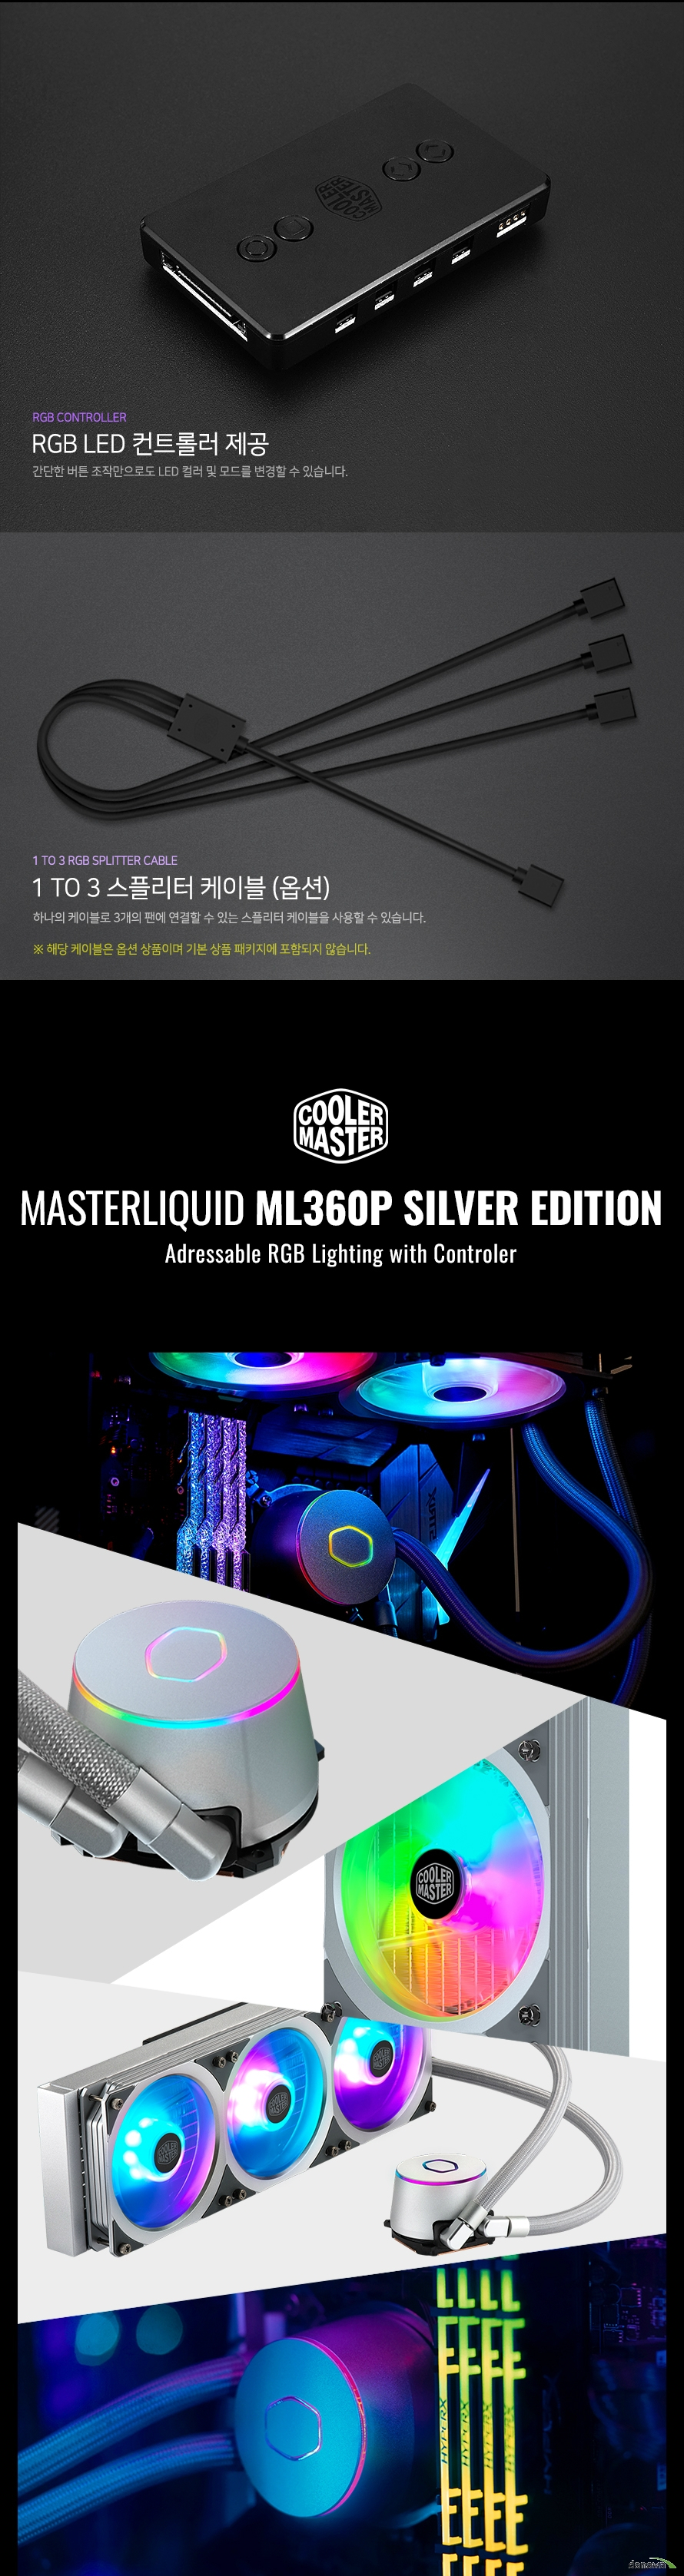 쿨러마스터 MasterLiquid ML360P SILVER EDITION